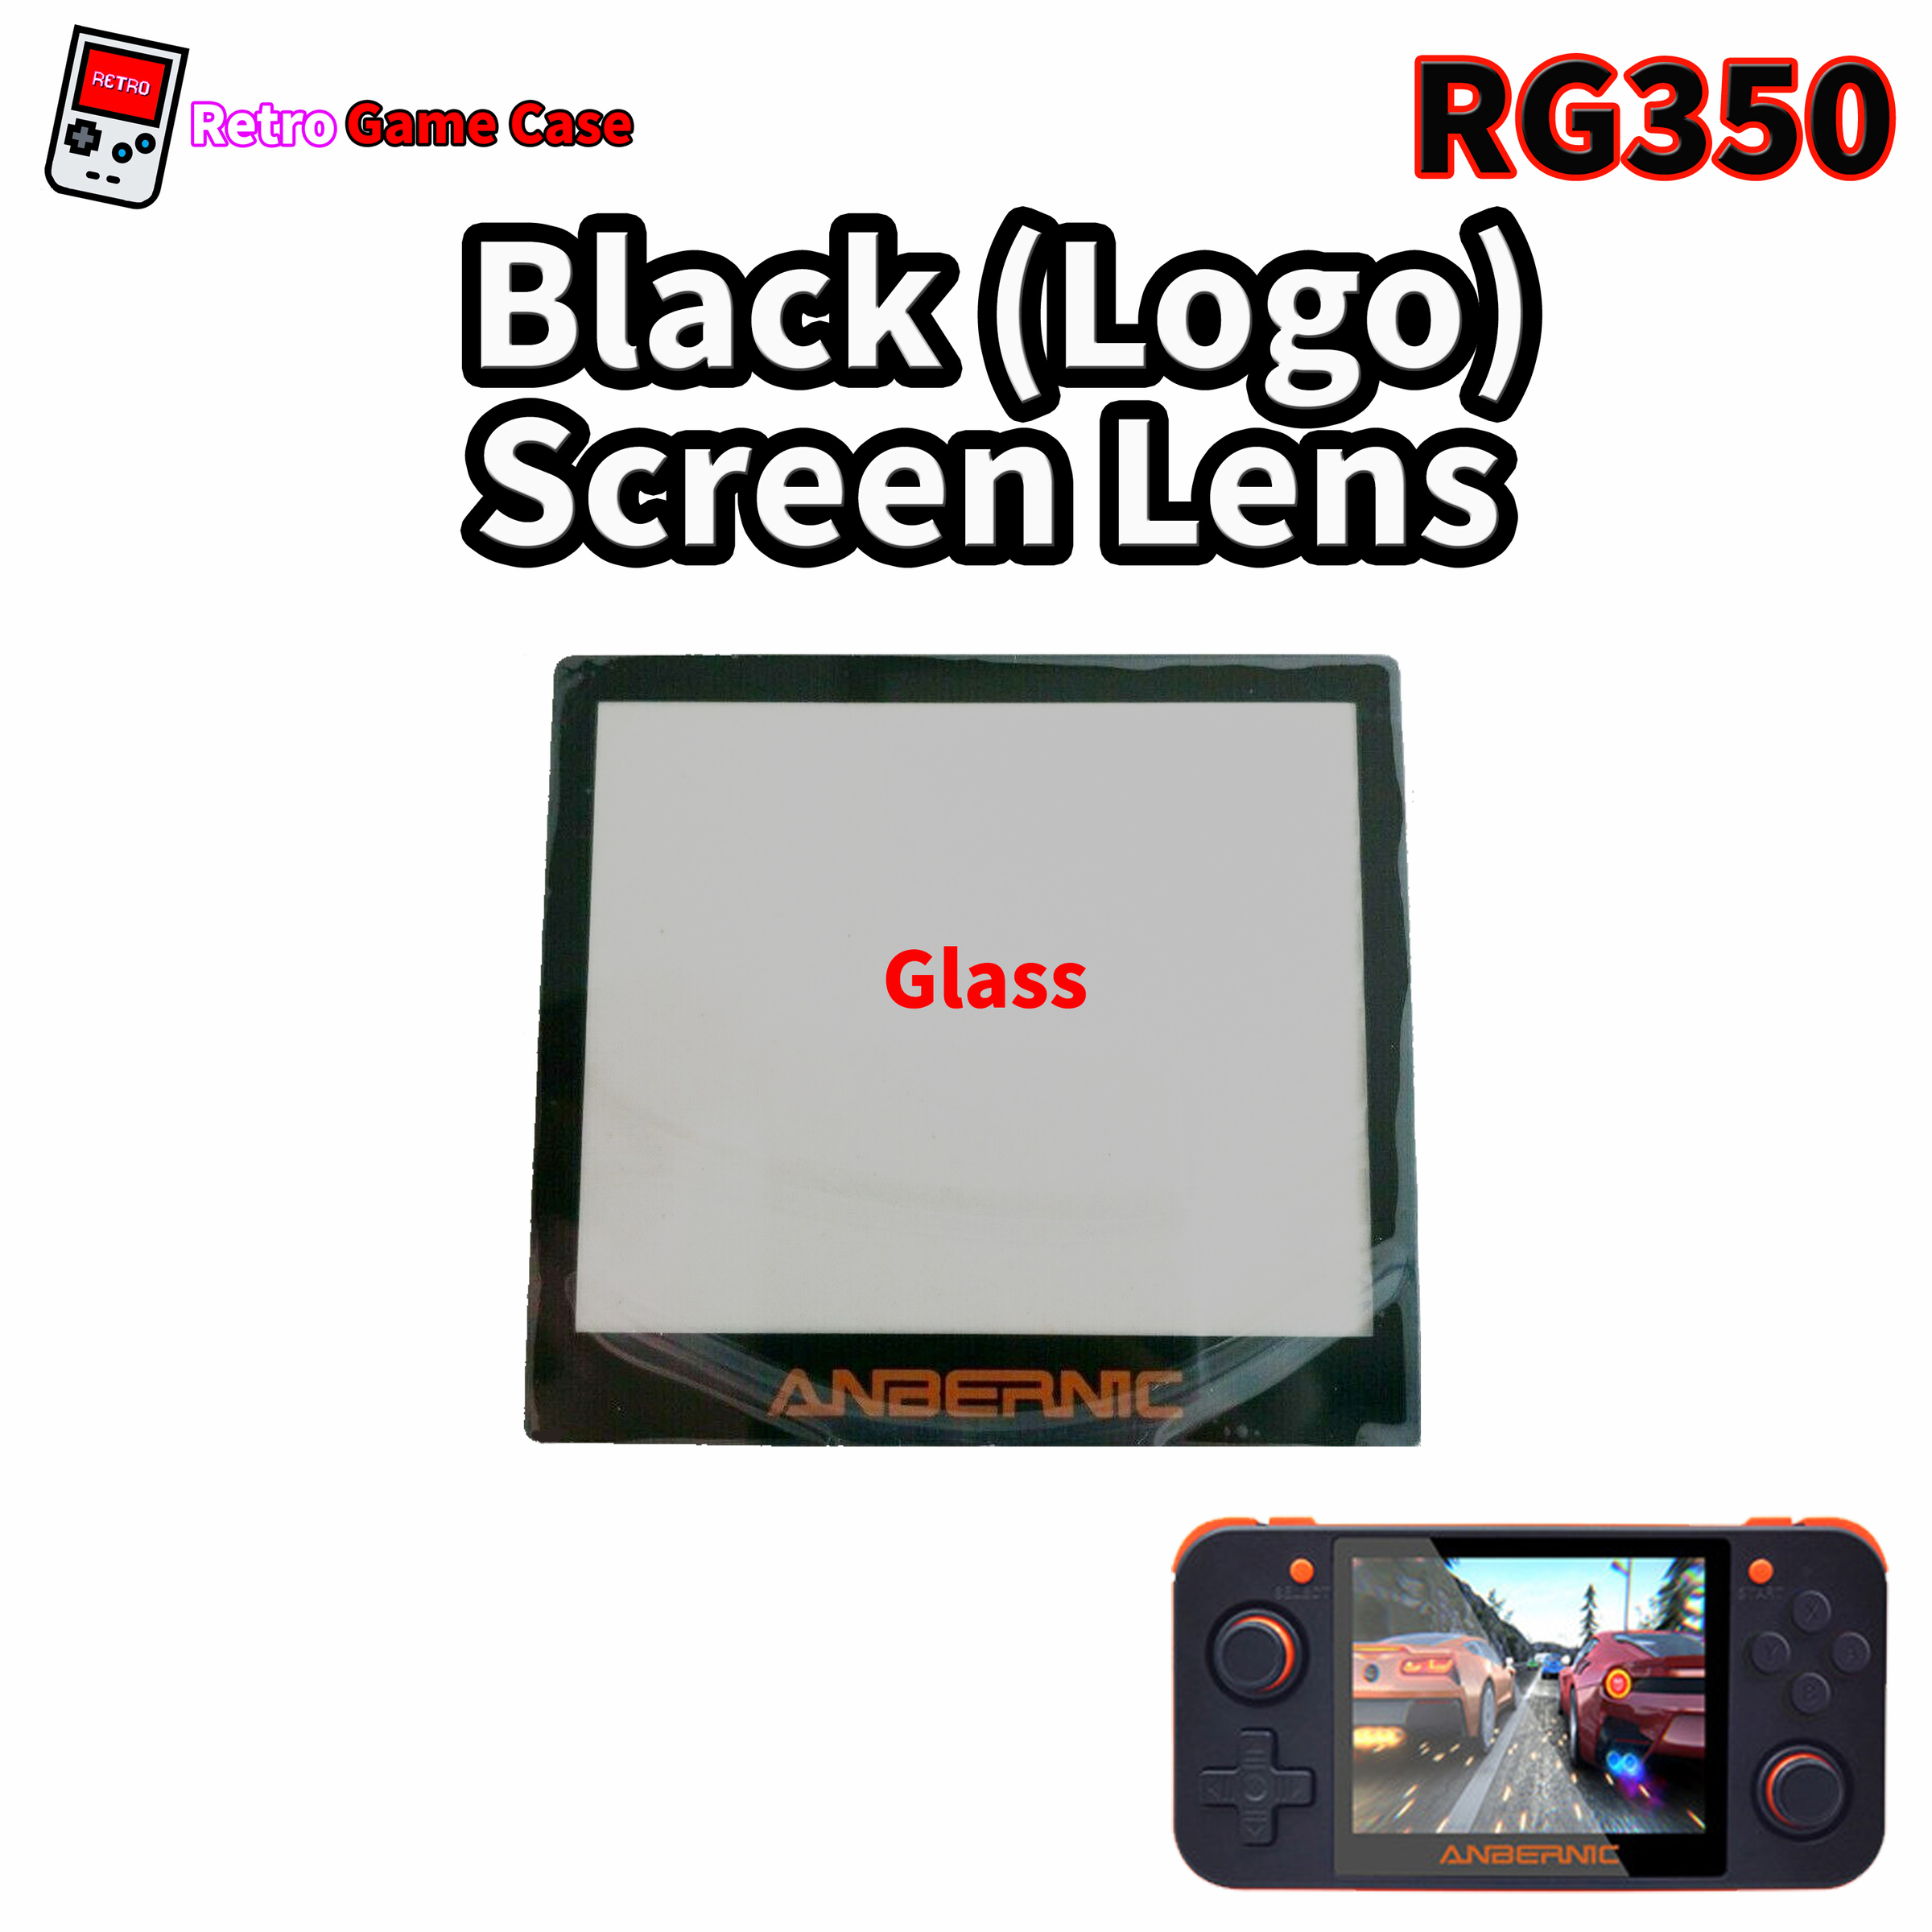 RG350 Screen Lenses with Logo (Glass)